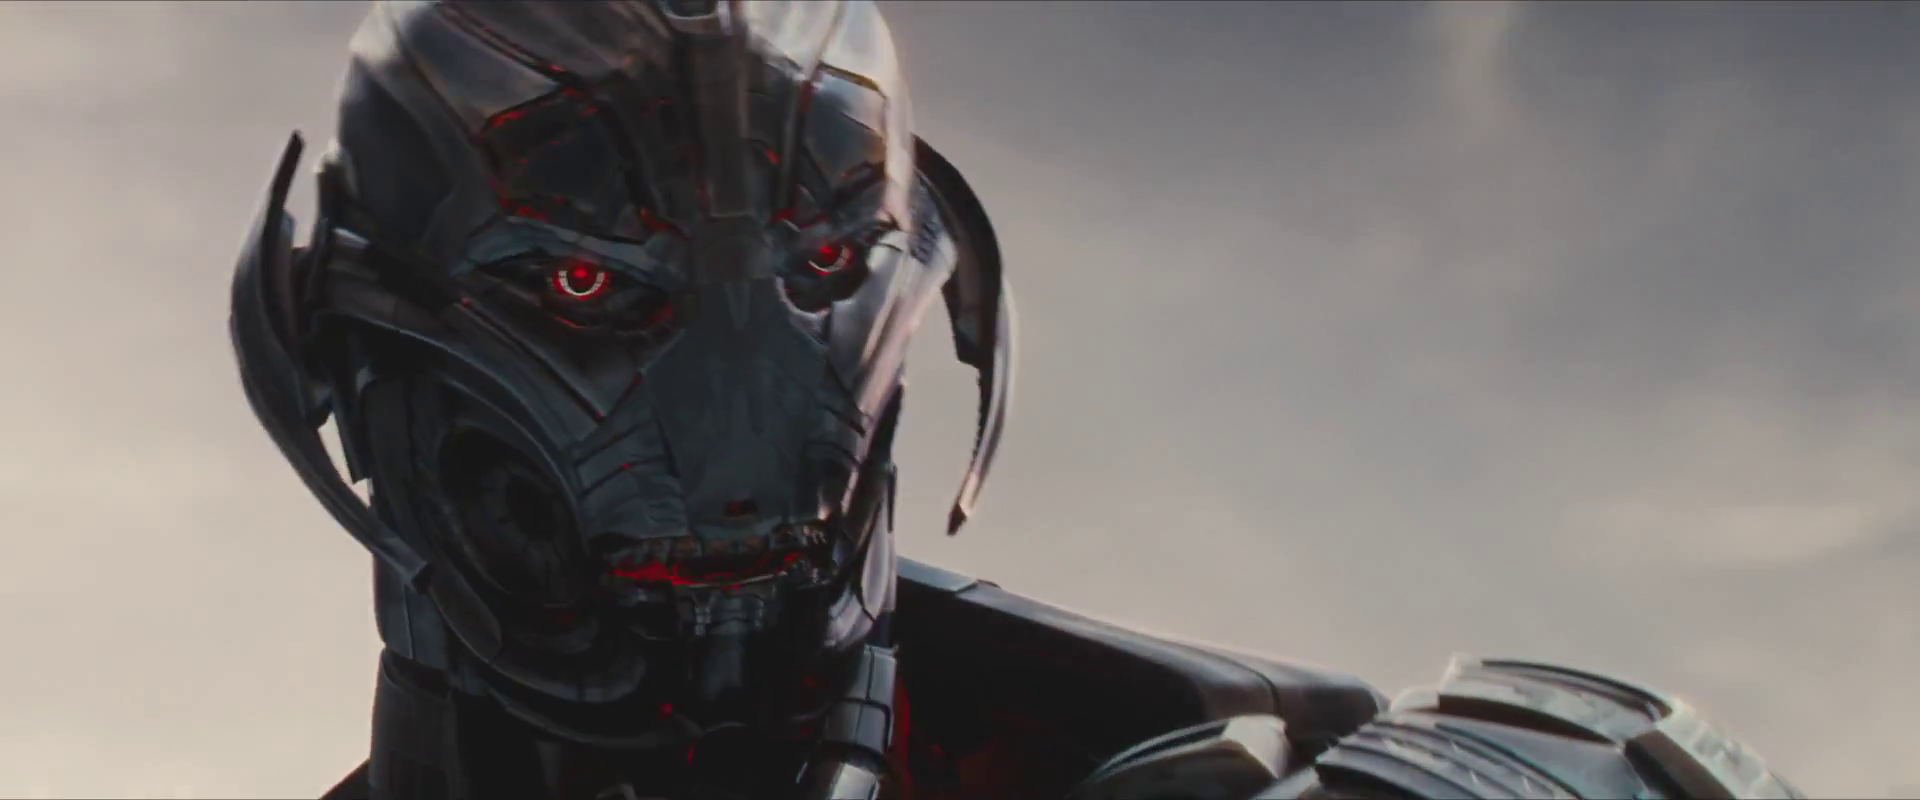 avengers-age-of-ultron-trailer-screengrab-32-ultron.png